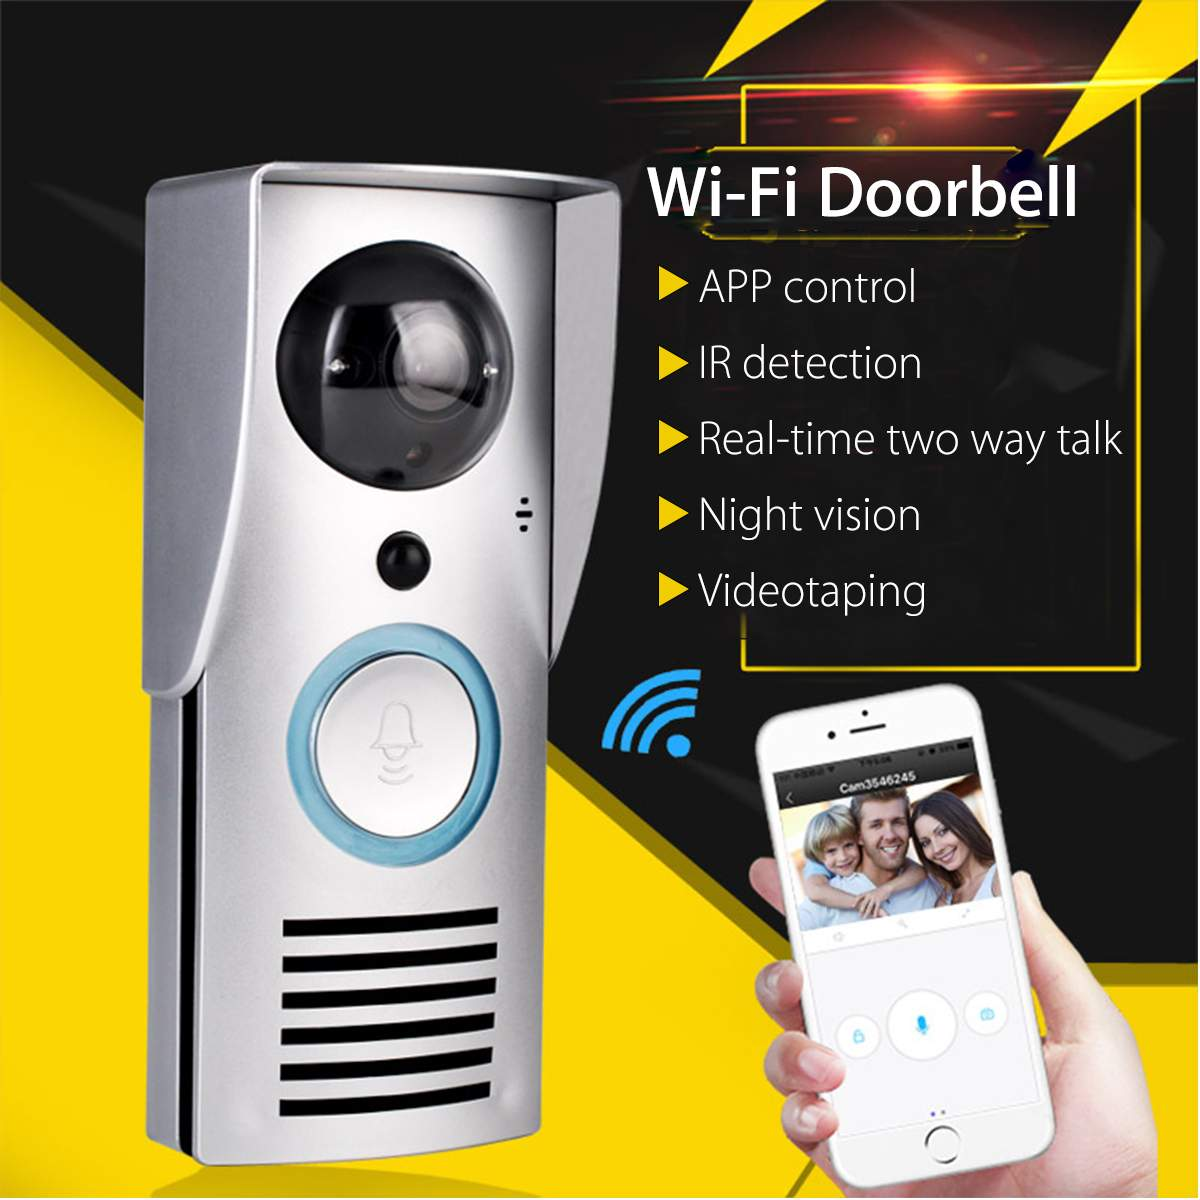 Smart WiFi Wireless Video Doorbell 720P Visual Call Intercom Camera IR Night Vision APP Control Home Security Monitoring image